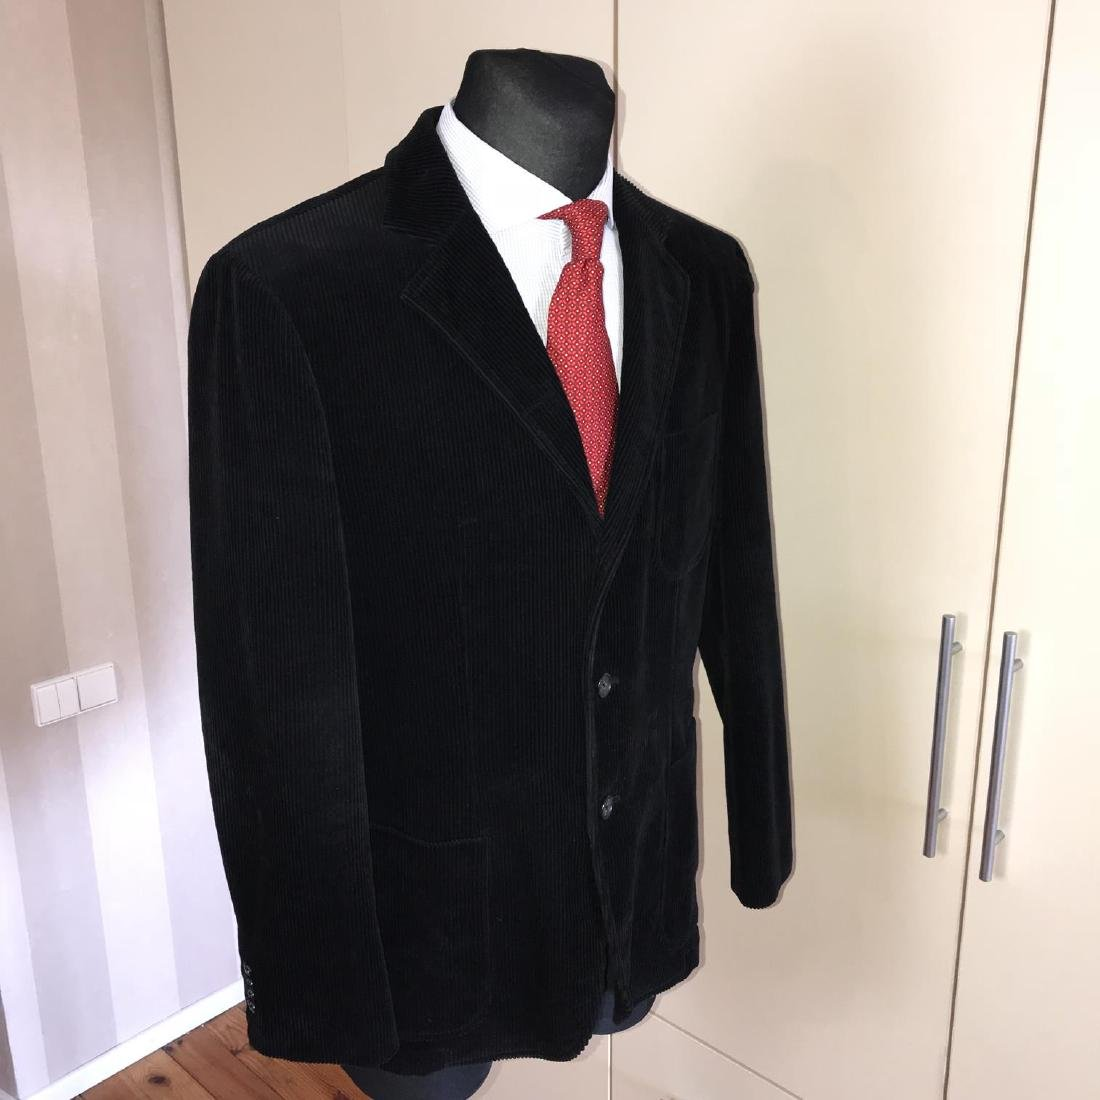 Men's GANT Black Velvet Jacket Blazer Size 48 EU 38 US - 5